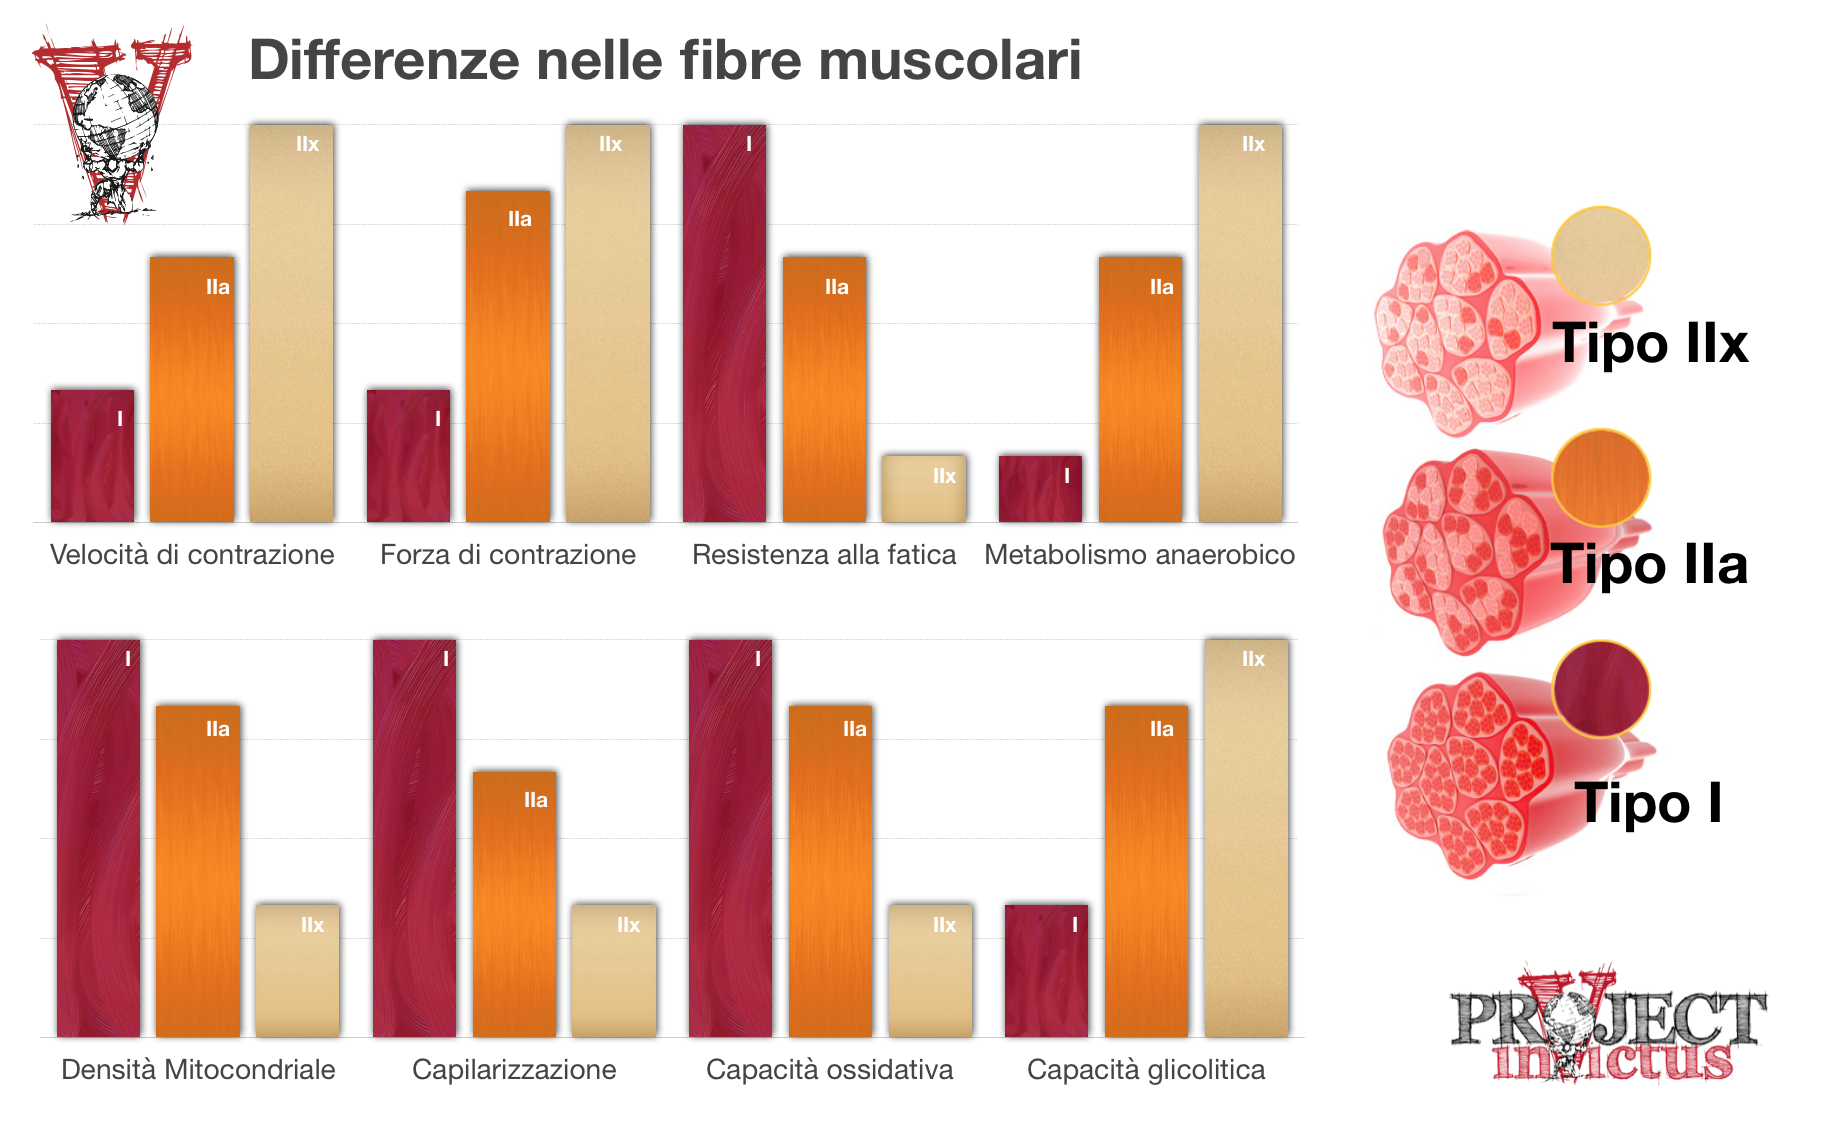 Differenze nelle fibre muscolari